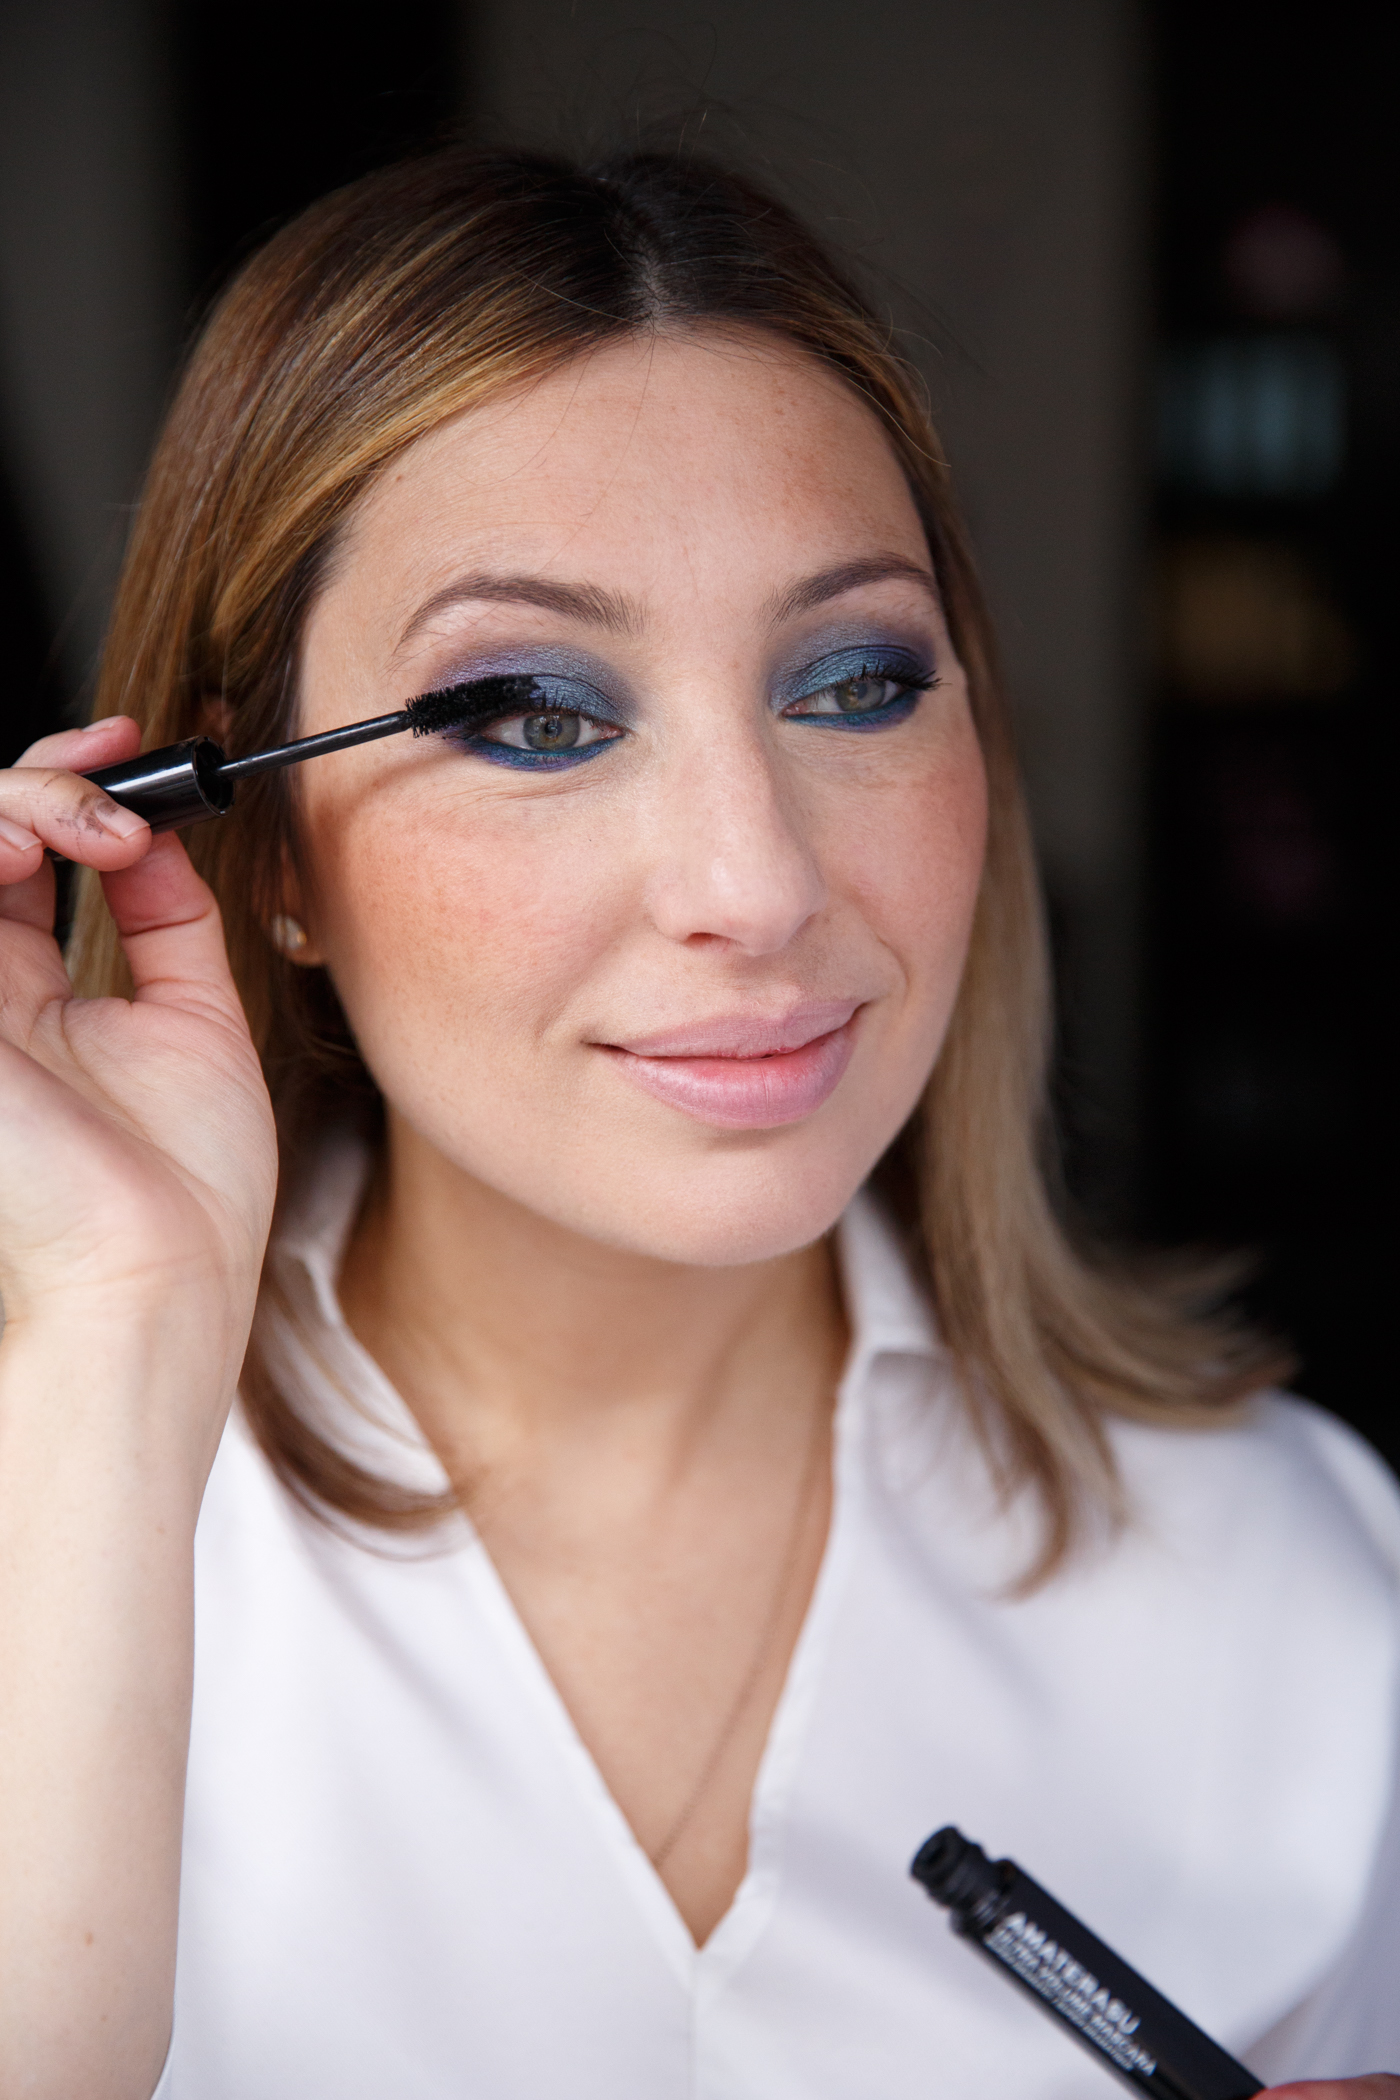 Nadia Albano, NYE, Makeup Tutorial, Hair Tutorial, Blue Eye Makeup, Union Photography, Laura Mercier, Make Up For Ever, MAC, Mereadesso, KMS, NadittudeTM